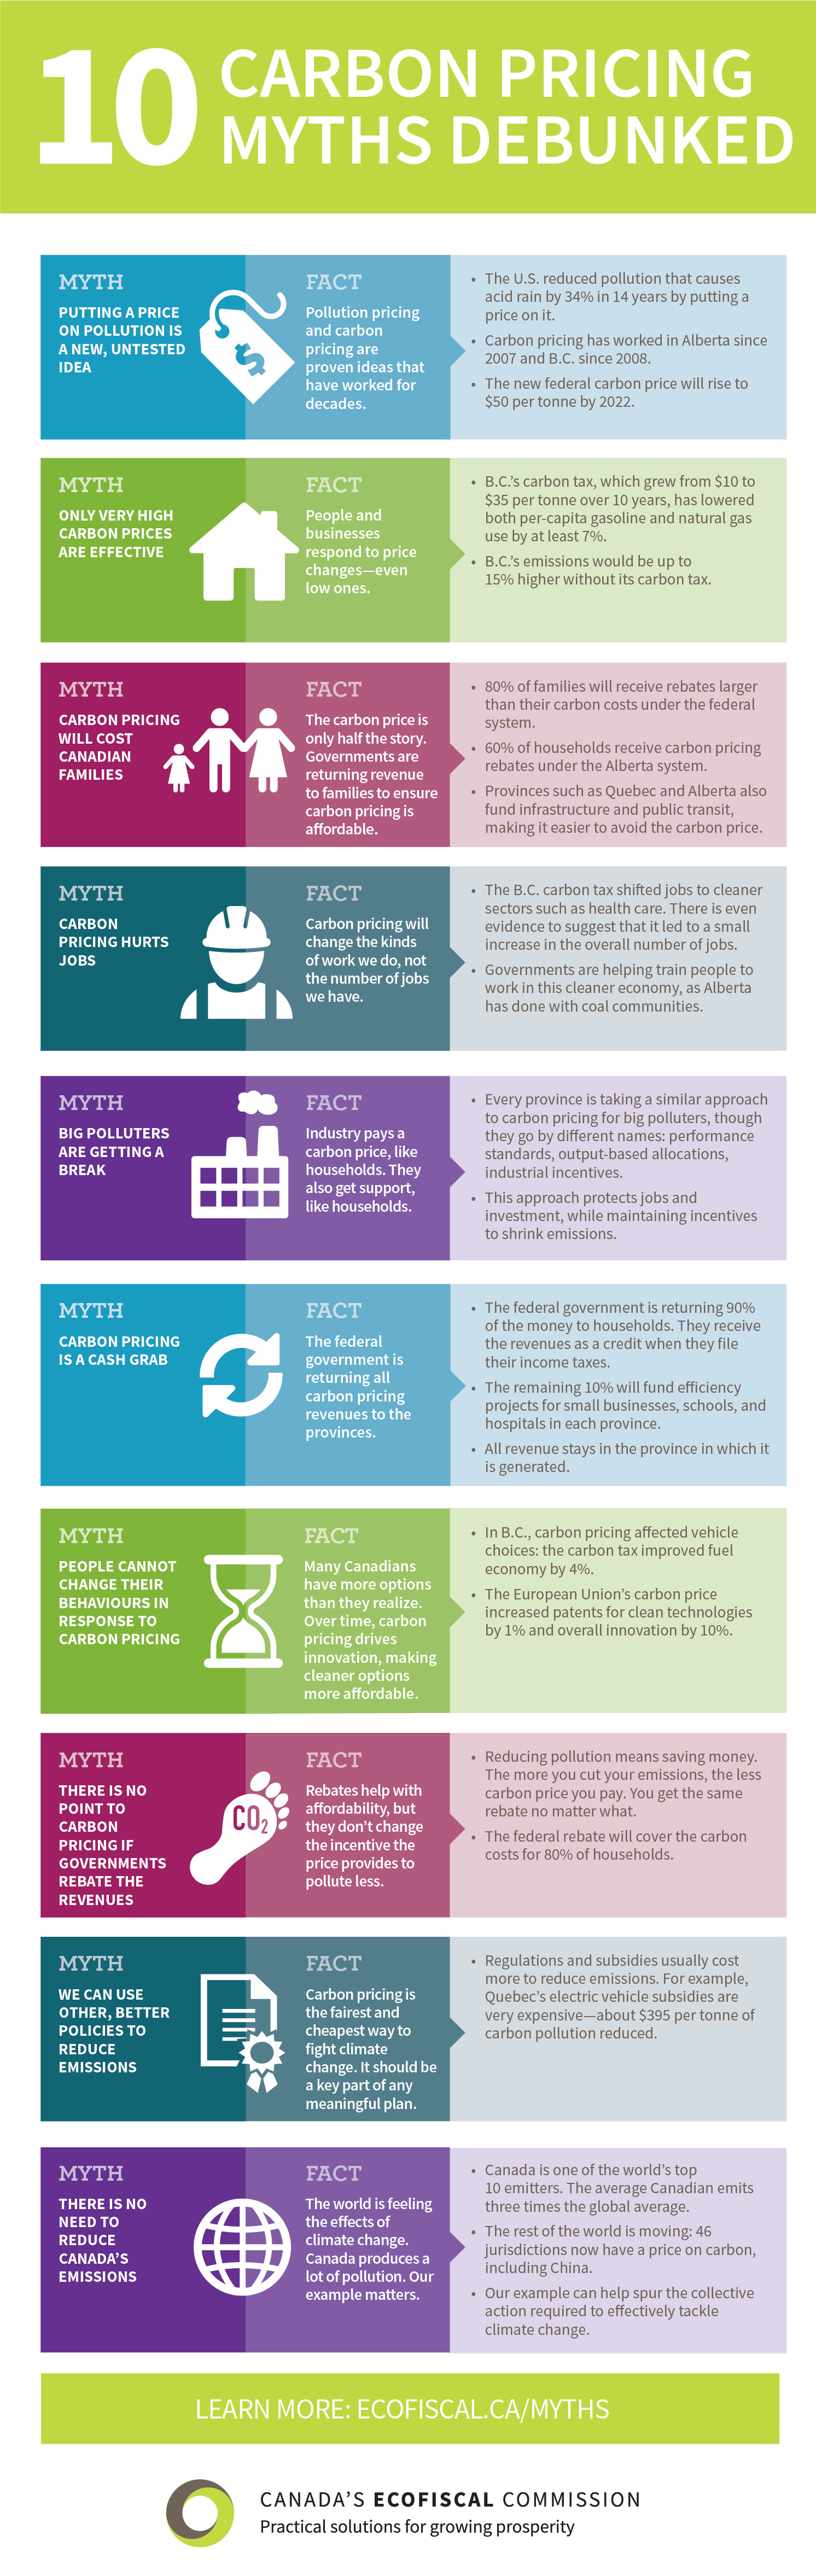 Ecofiscal-Commission-10-Myths-about-Carbon-Pricing-Infographic-vertical-1.jpg